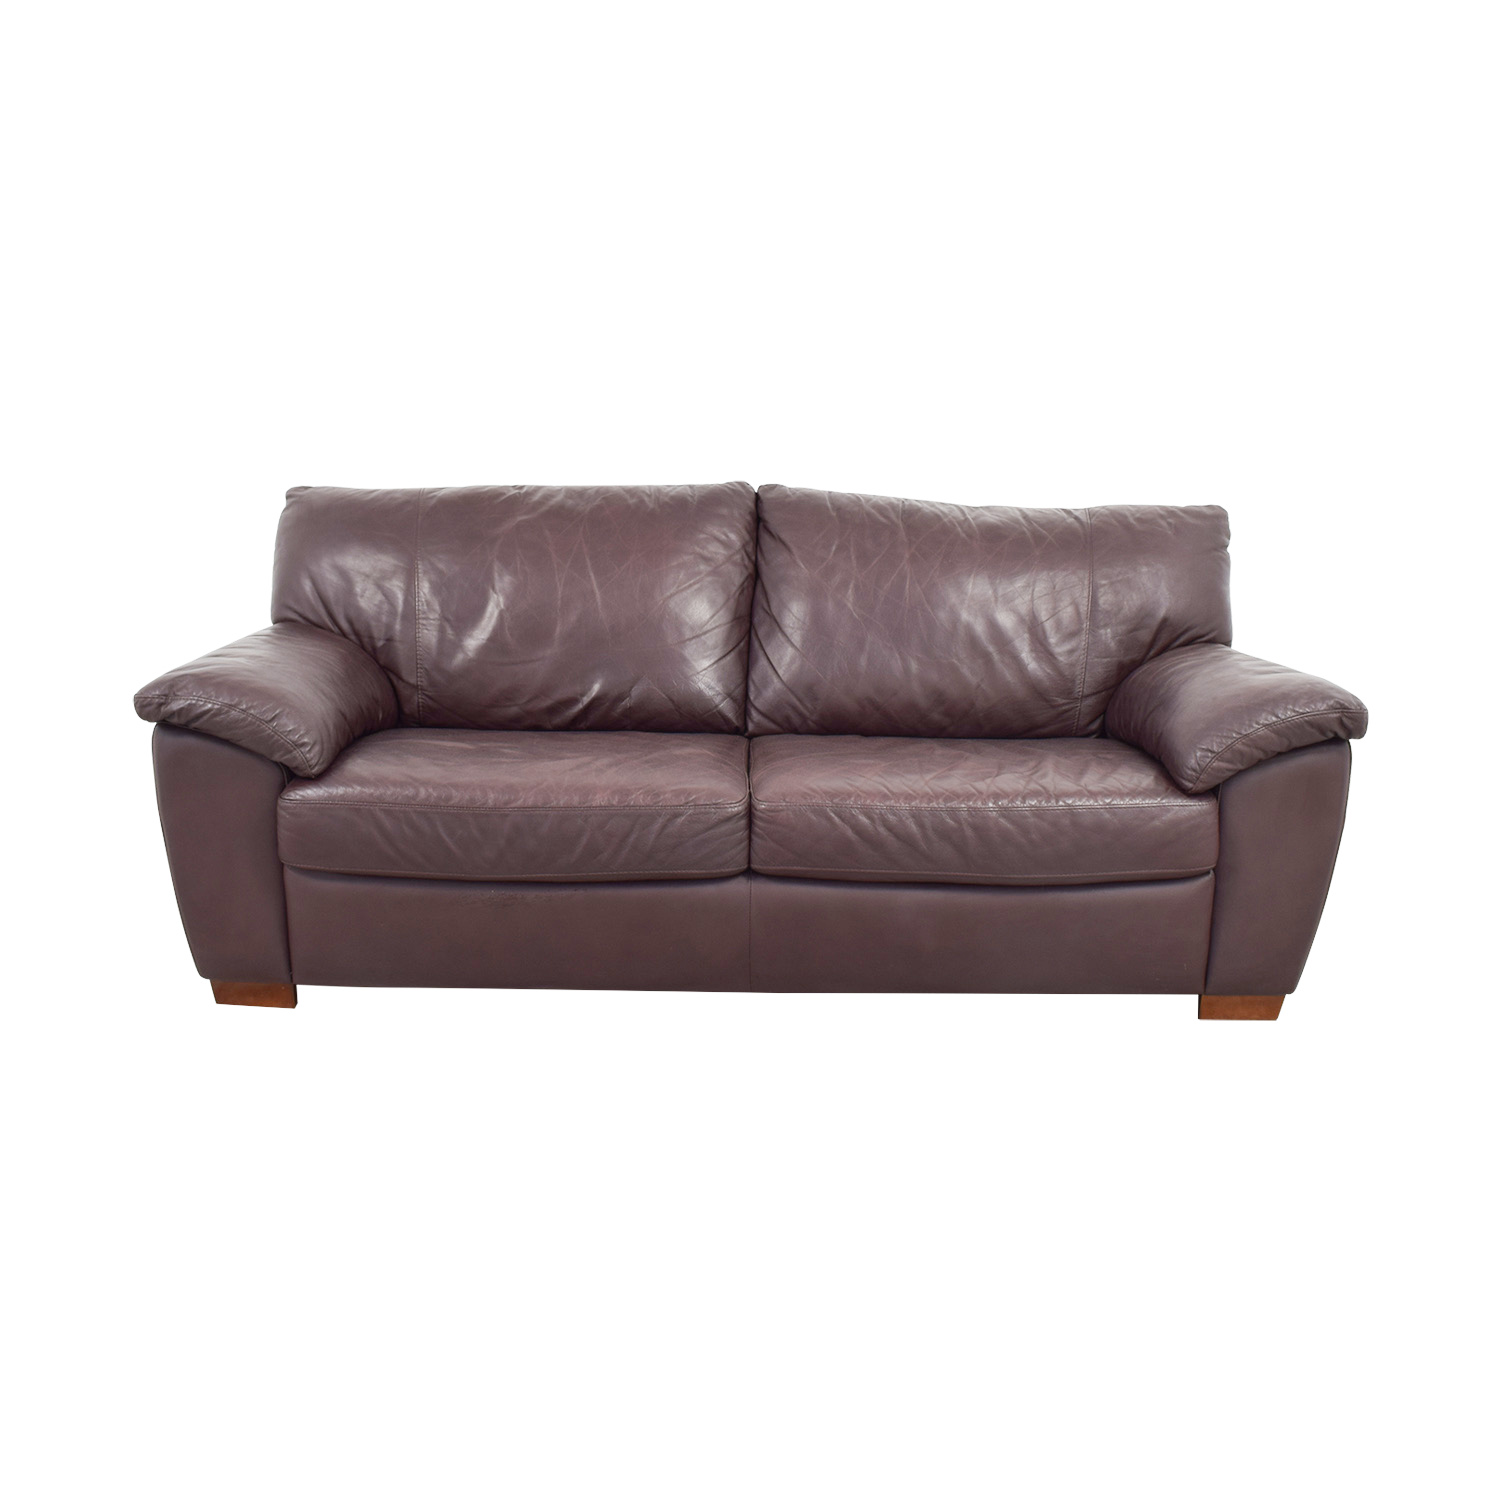 Cushions For Brown Leather Sofas 87 Off Ikea Ikea Vreta Brown Leather Two Cushion Sofa